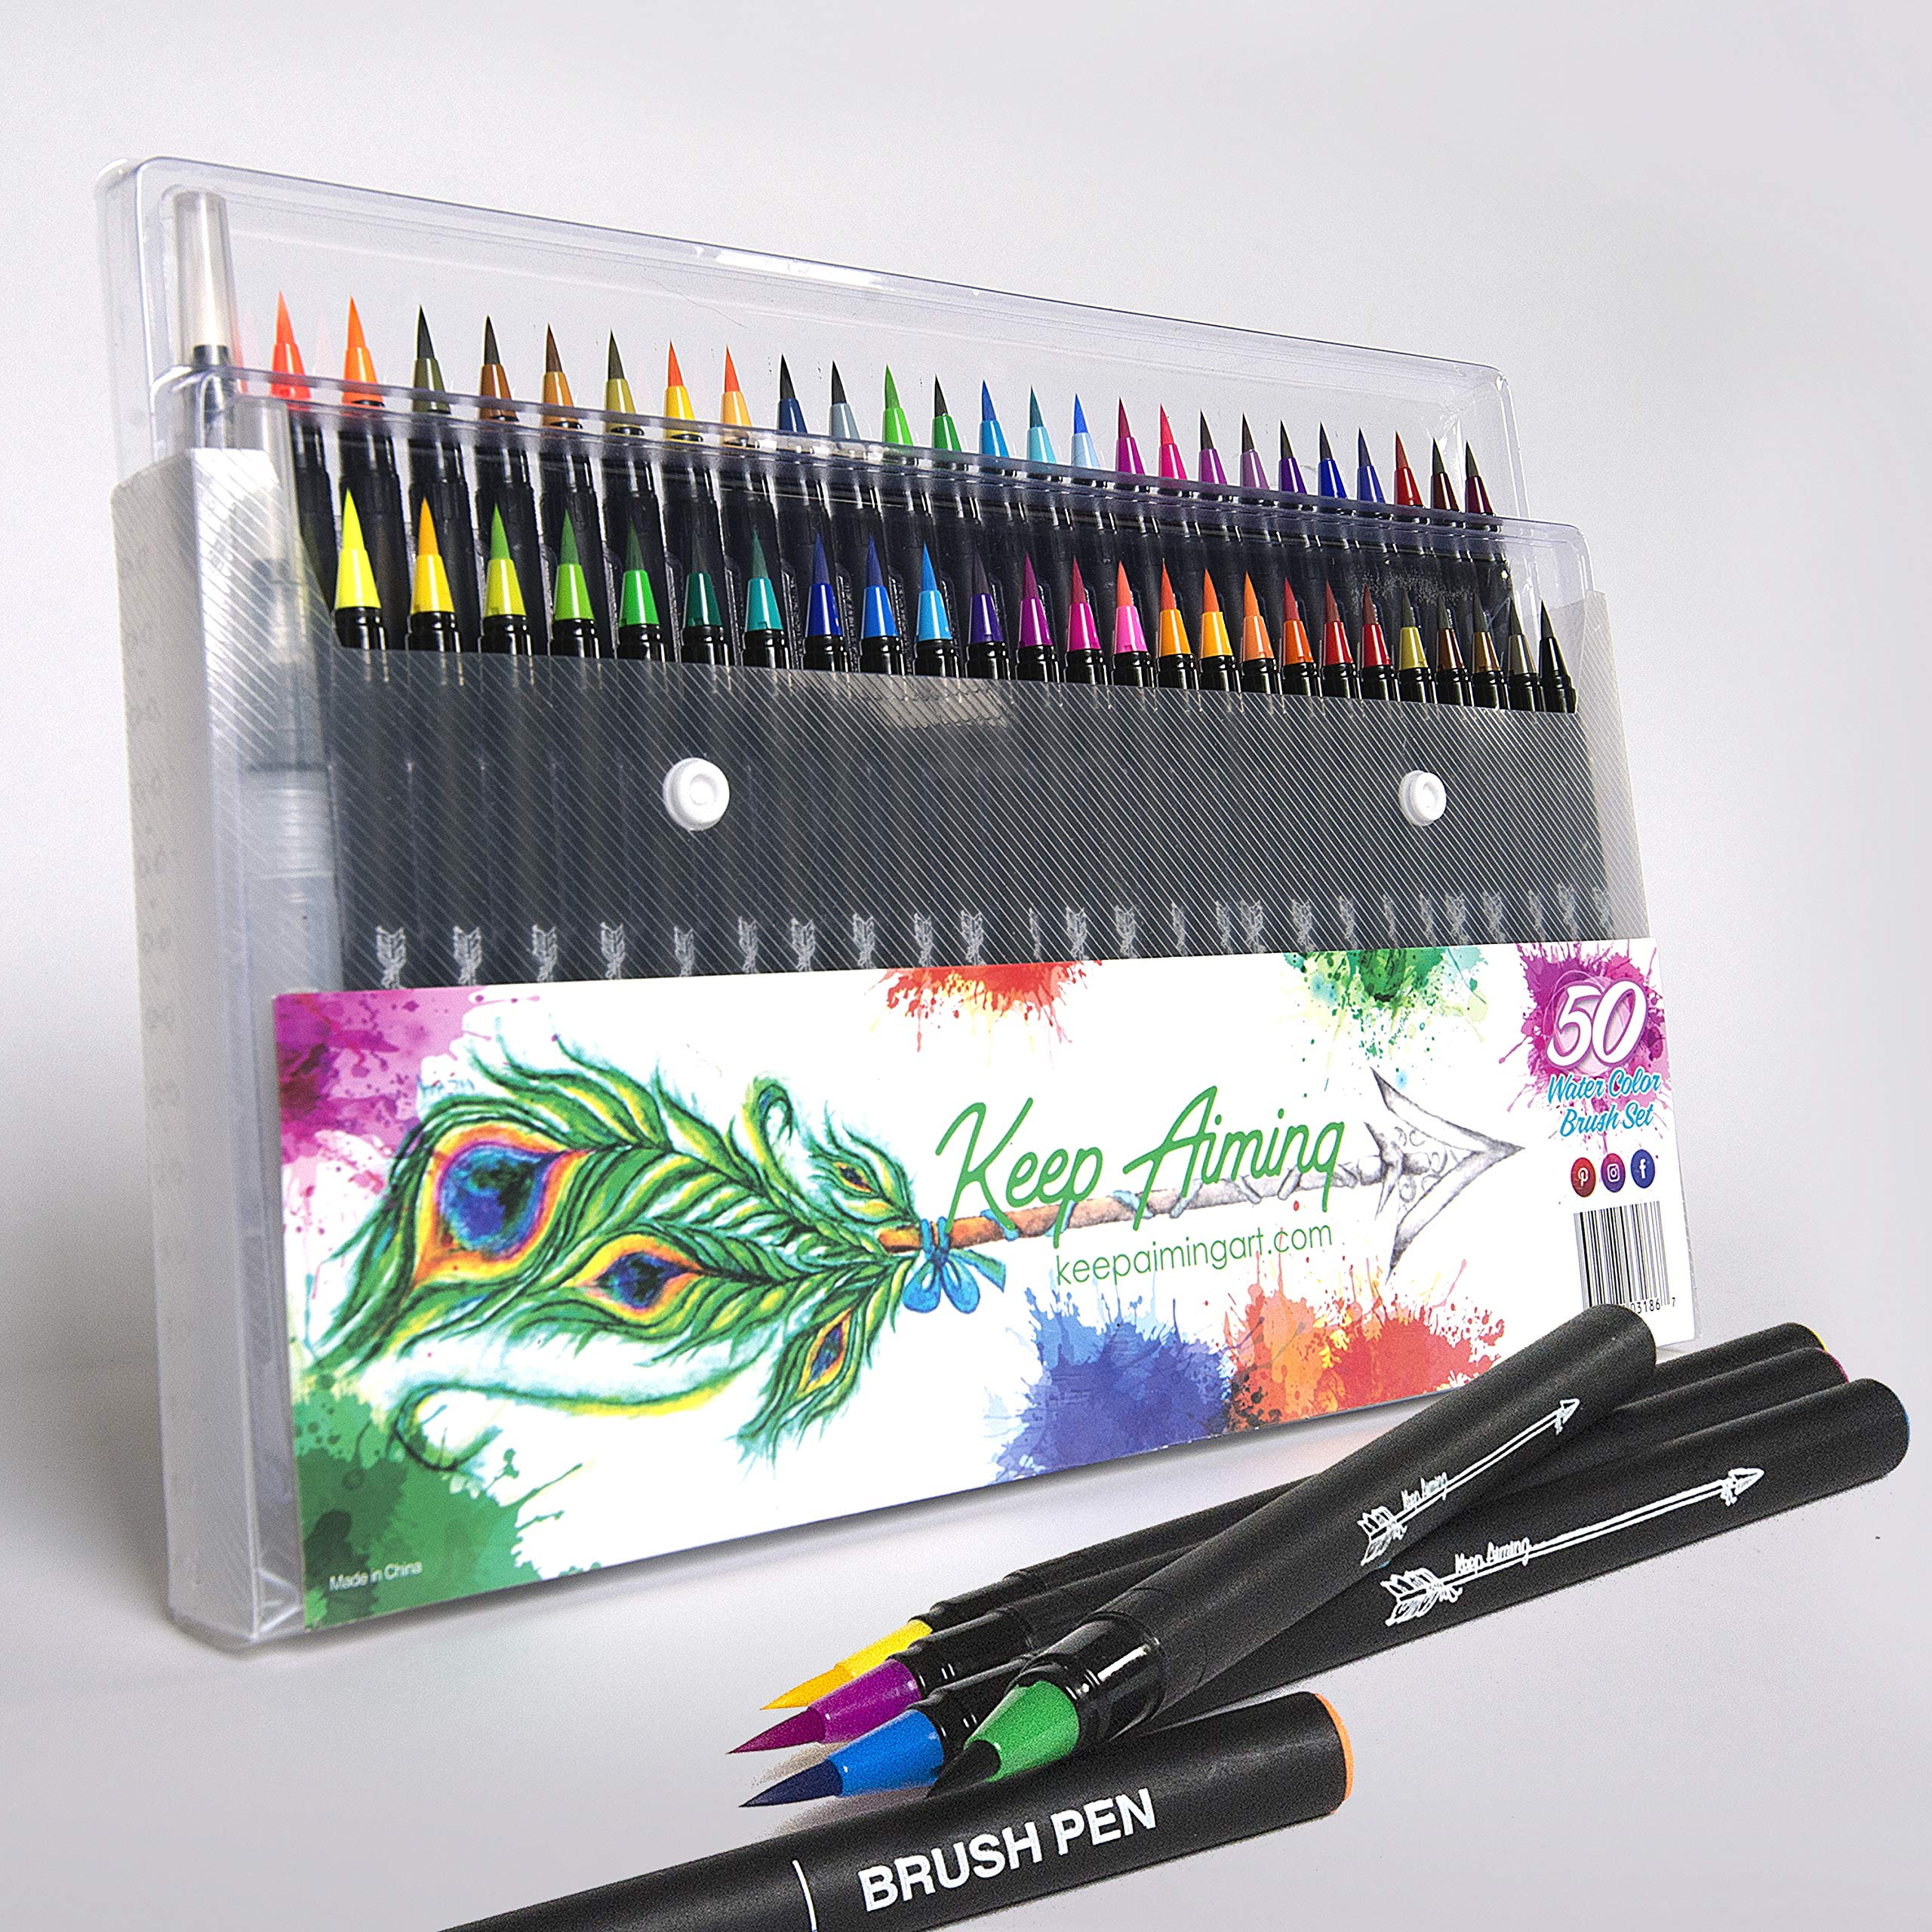 50 Premium Watercolor Brush Pens - Best Art Supplies & Paint Brushes/Markers for Adult Coloring Books & Arts and Crafts for Girls - Calligraphy Pen & Blending Brushes for Artists, Adults & Kids by Keep Aiming